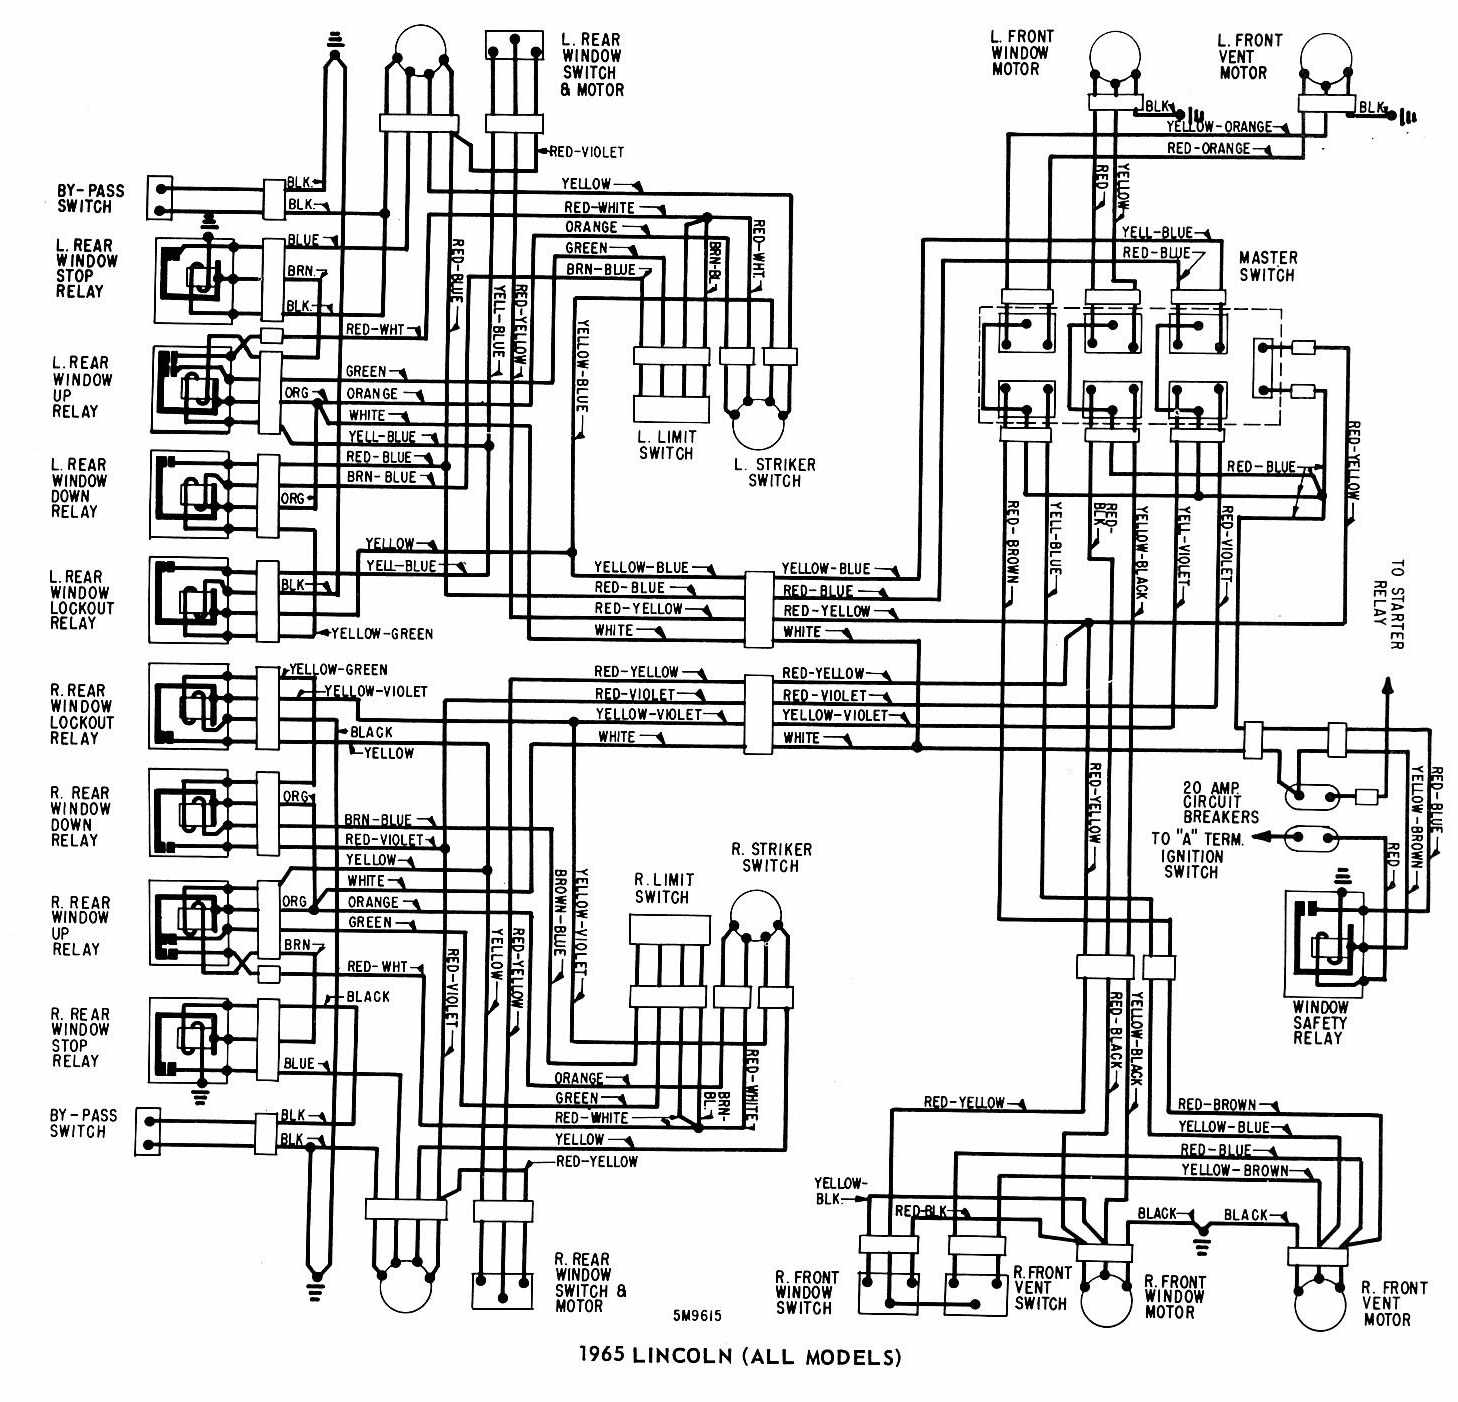 1971 lincoln wiring diagram wiring diagrams lincoln continental engine diagram 1976 lincoln continental wiring diagrams wiring [ 1458 x 1402 Pixel ]